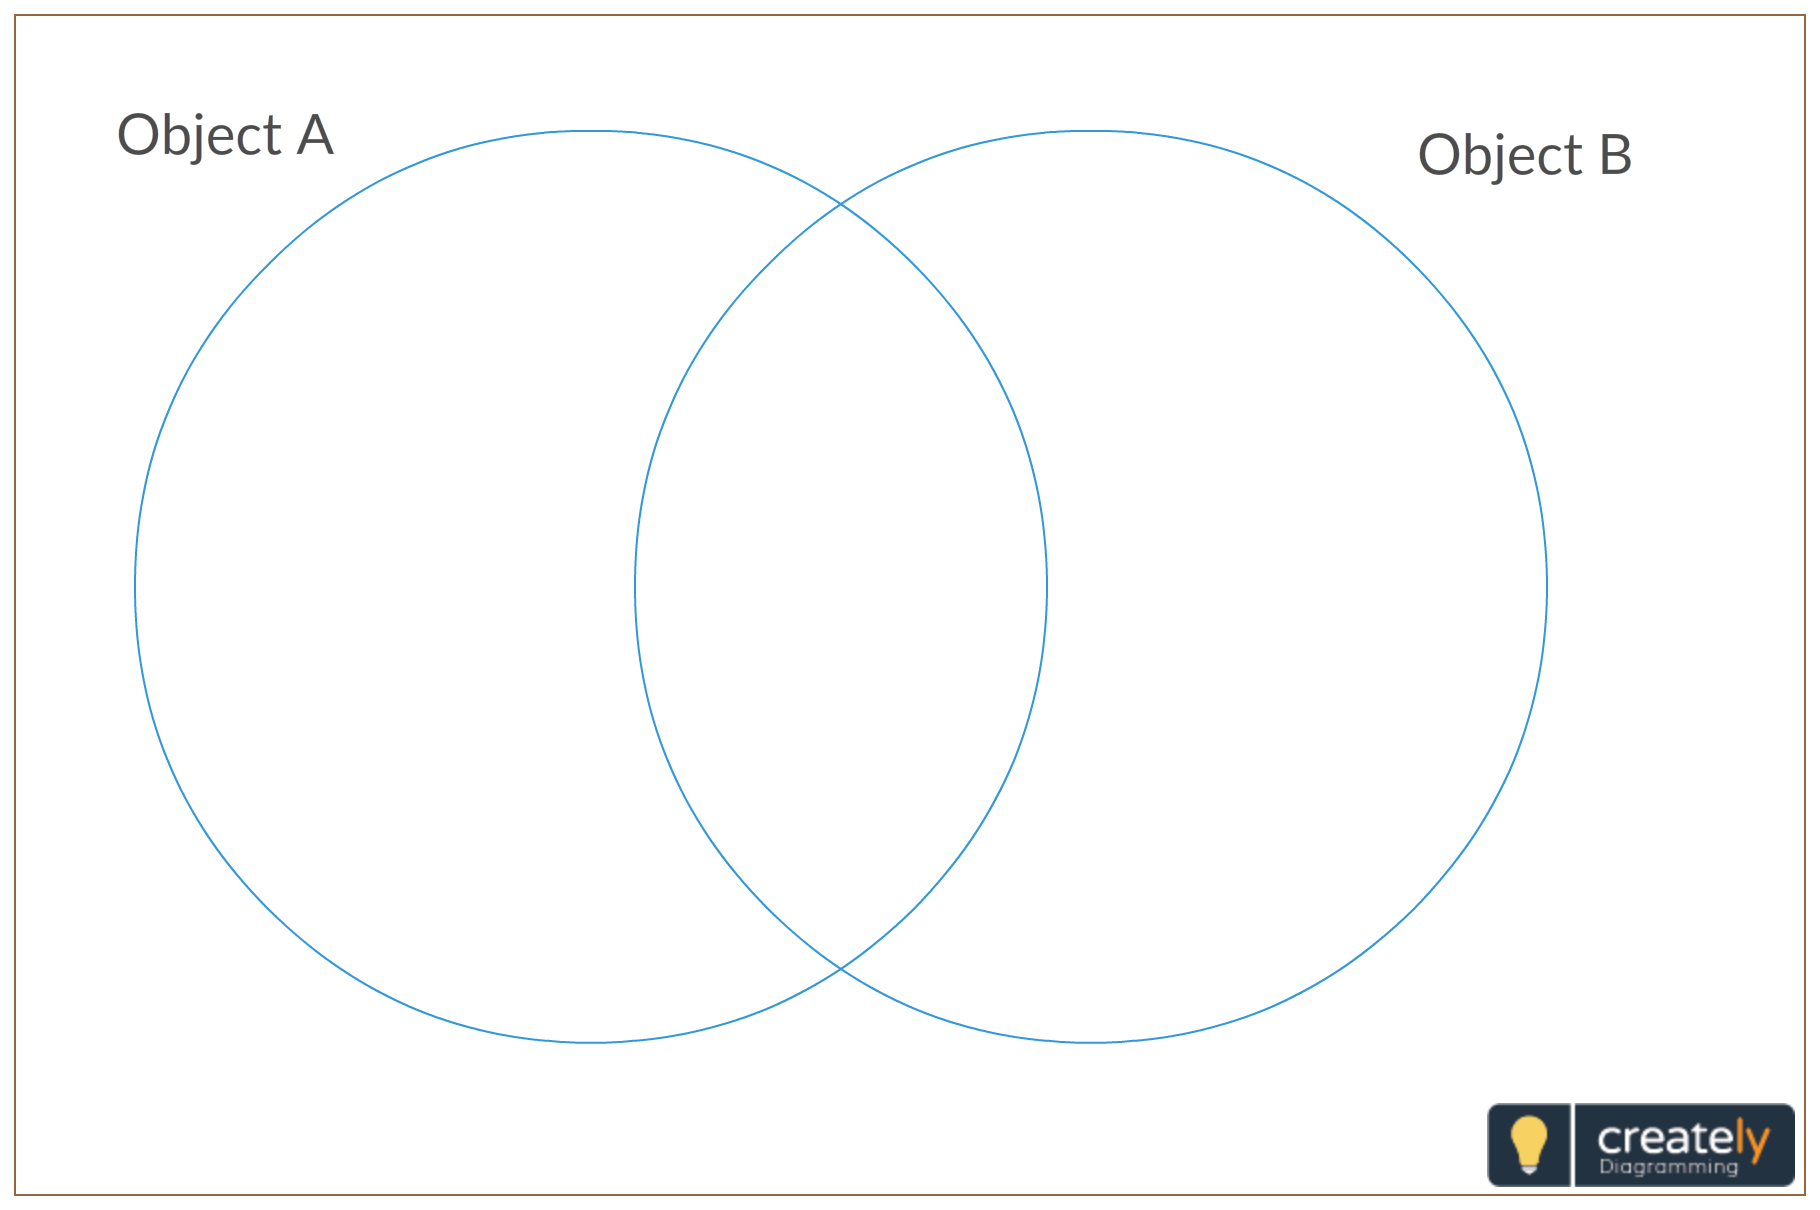 Creating A Compare And Contrast Chart Using A Venn Diagram There Are Many Ways To Compare And Contrast Venn Diagram Template Venn Diagram Compare And Contrast